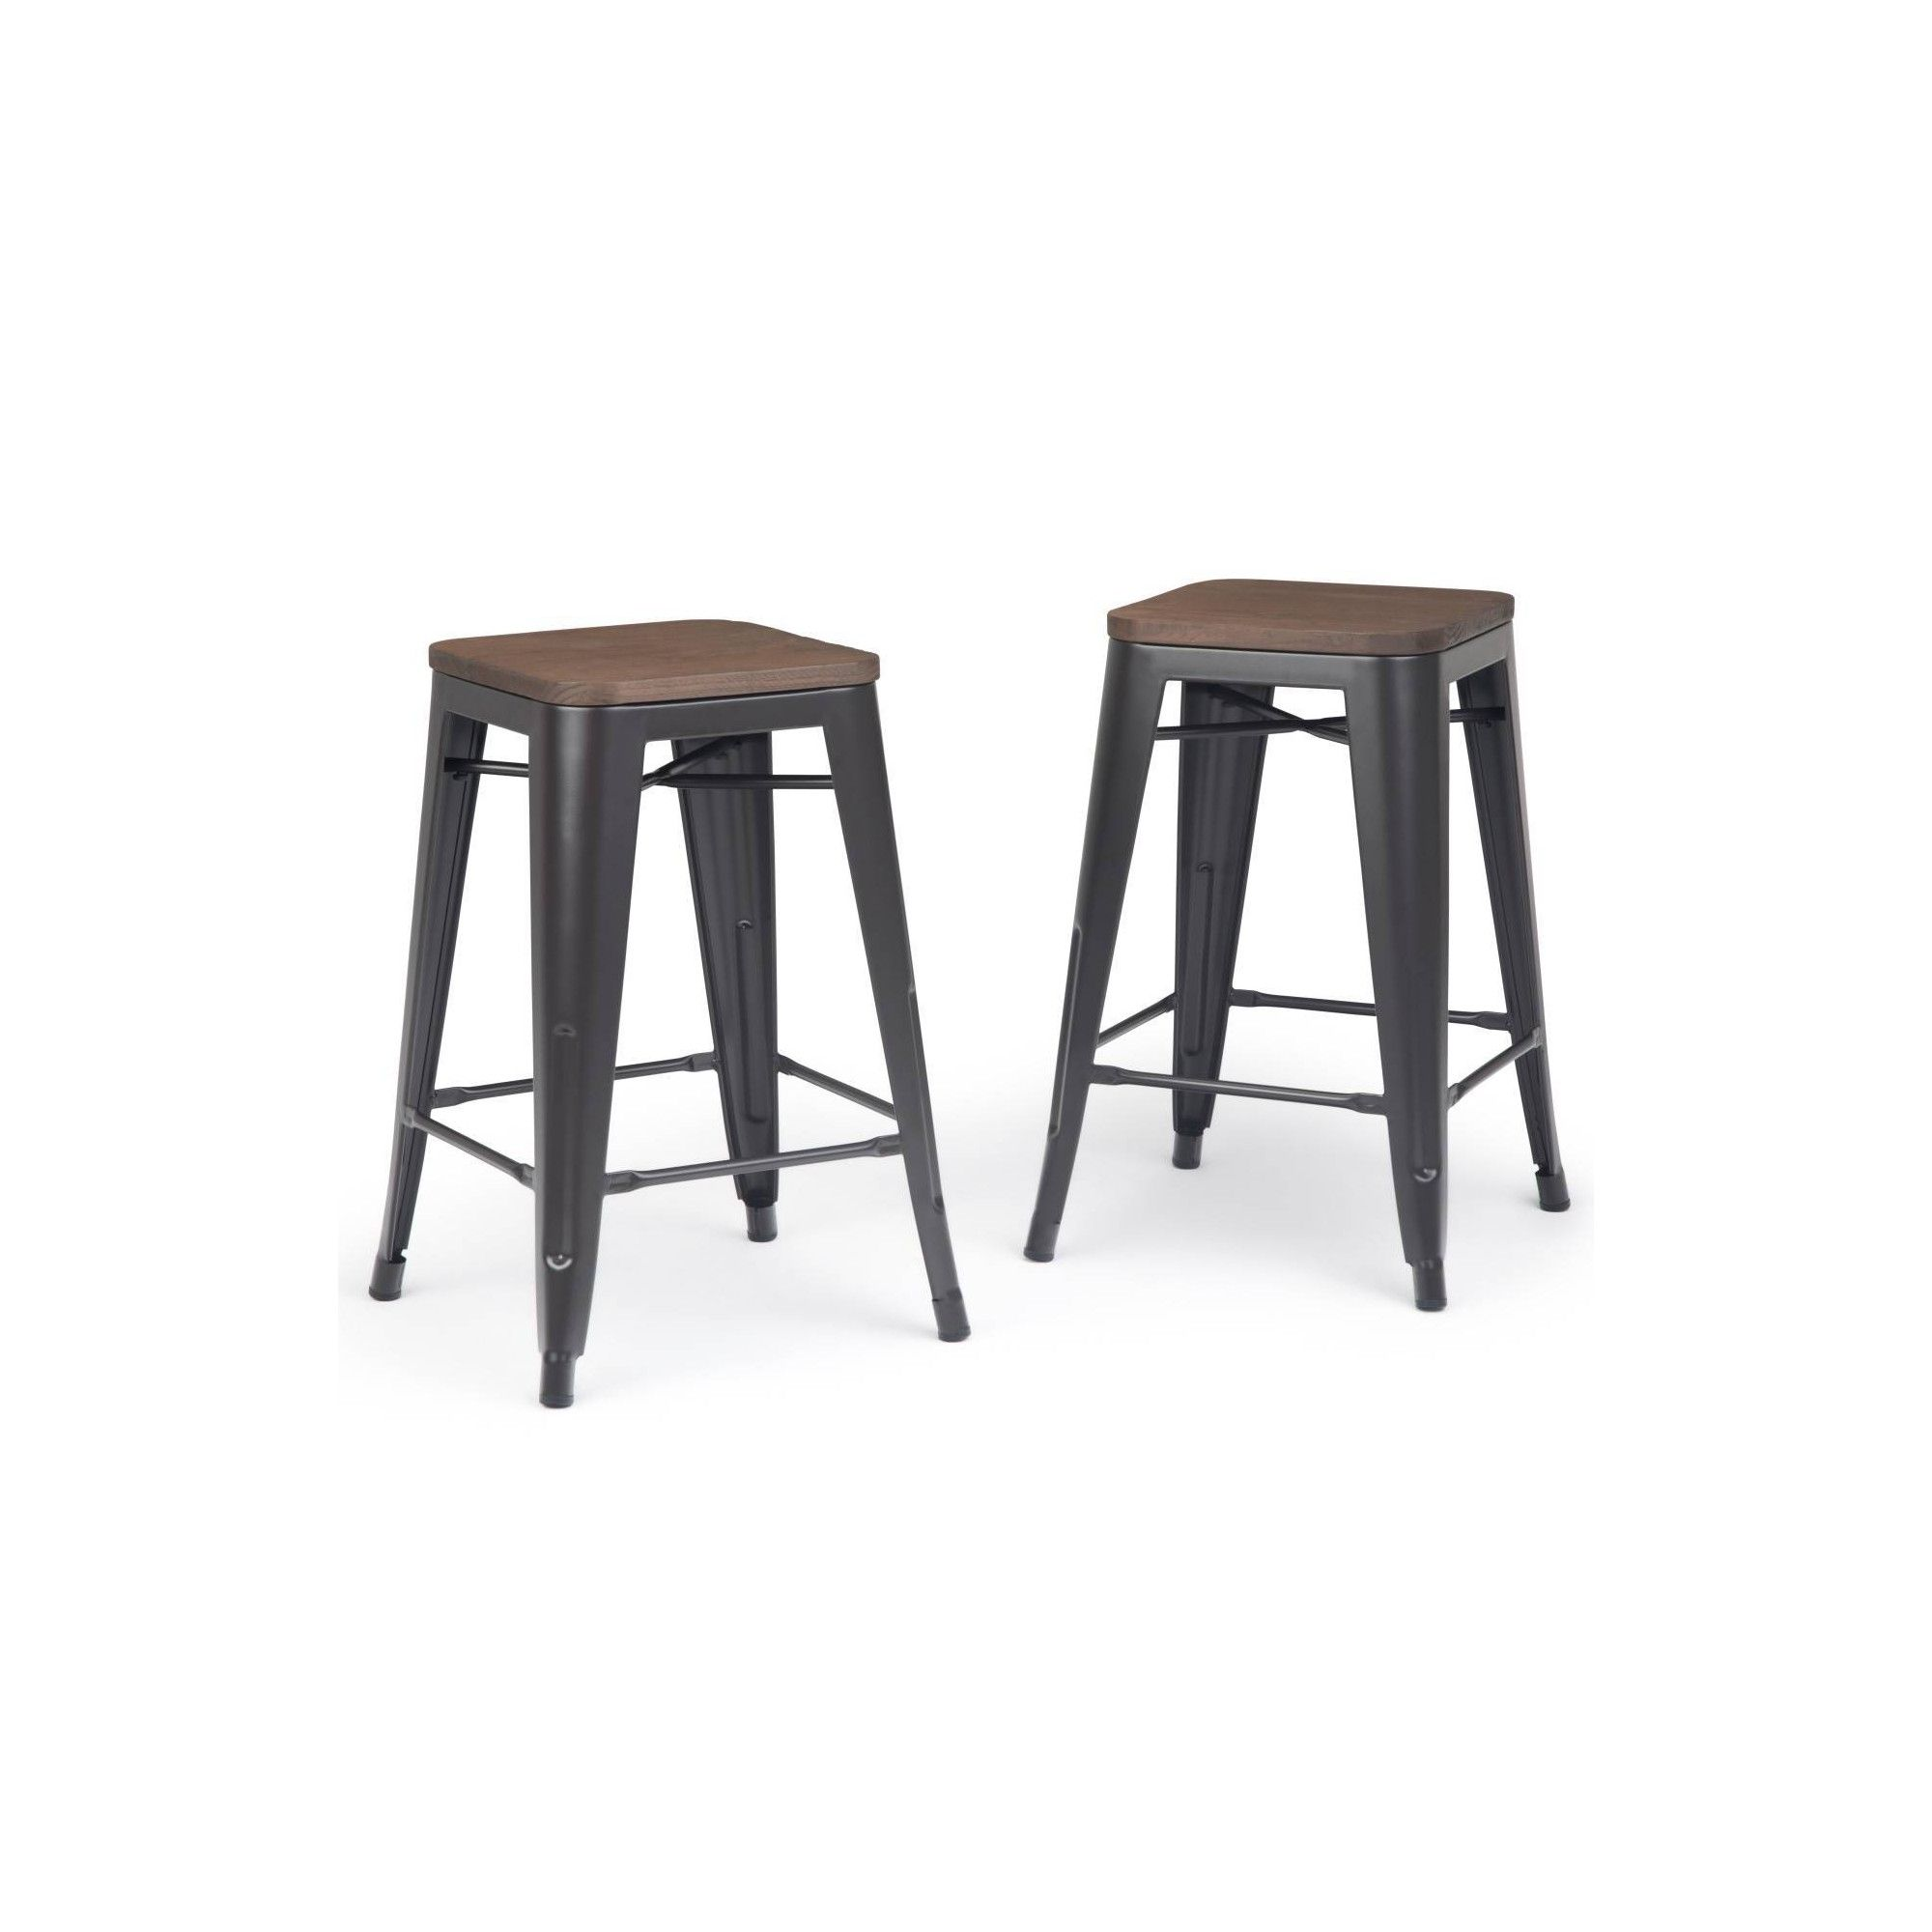 24 Set Of 2 Hartley Metal Counter Stool With Wood Cocoa Brown